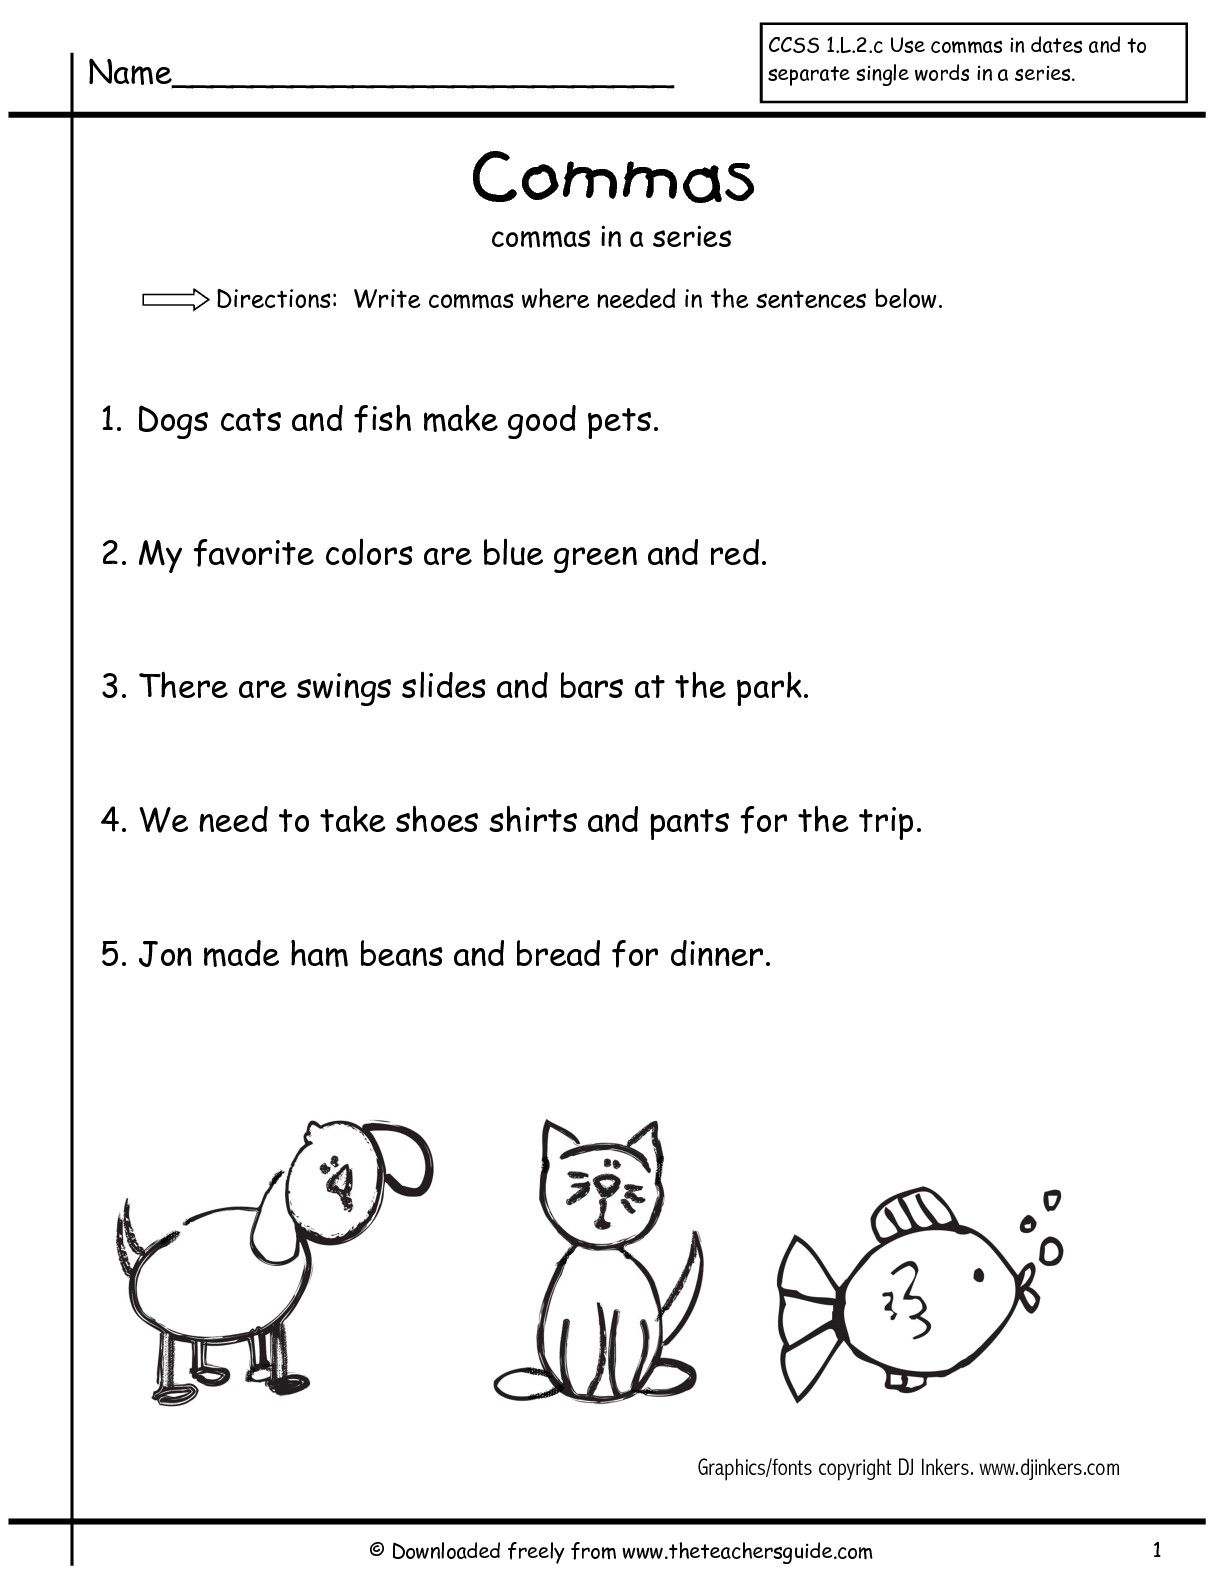 Worksheets Grammar Worksheets For 1st Grade grammar worksheets commas in a series first grade free comma worksheets